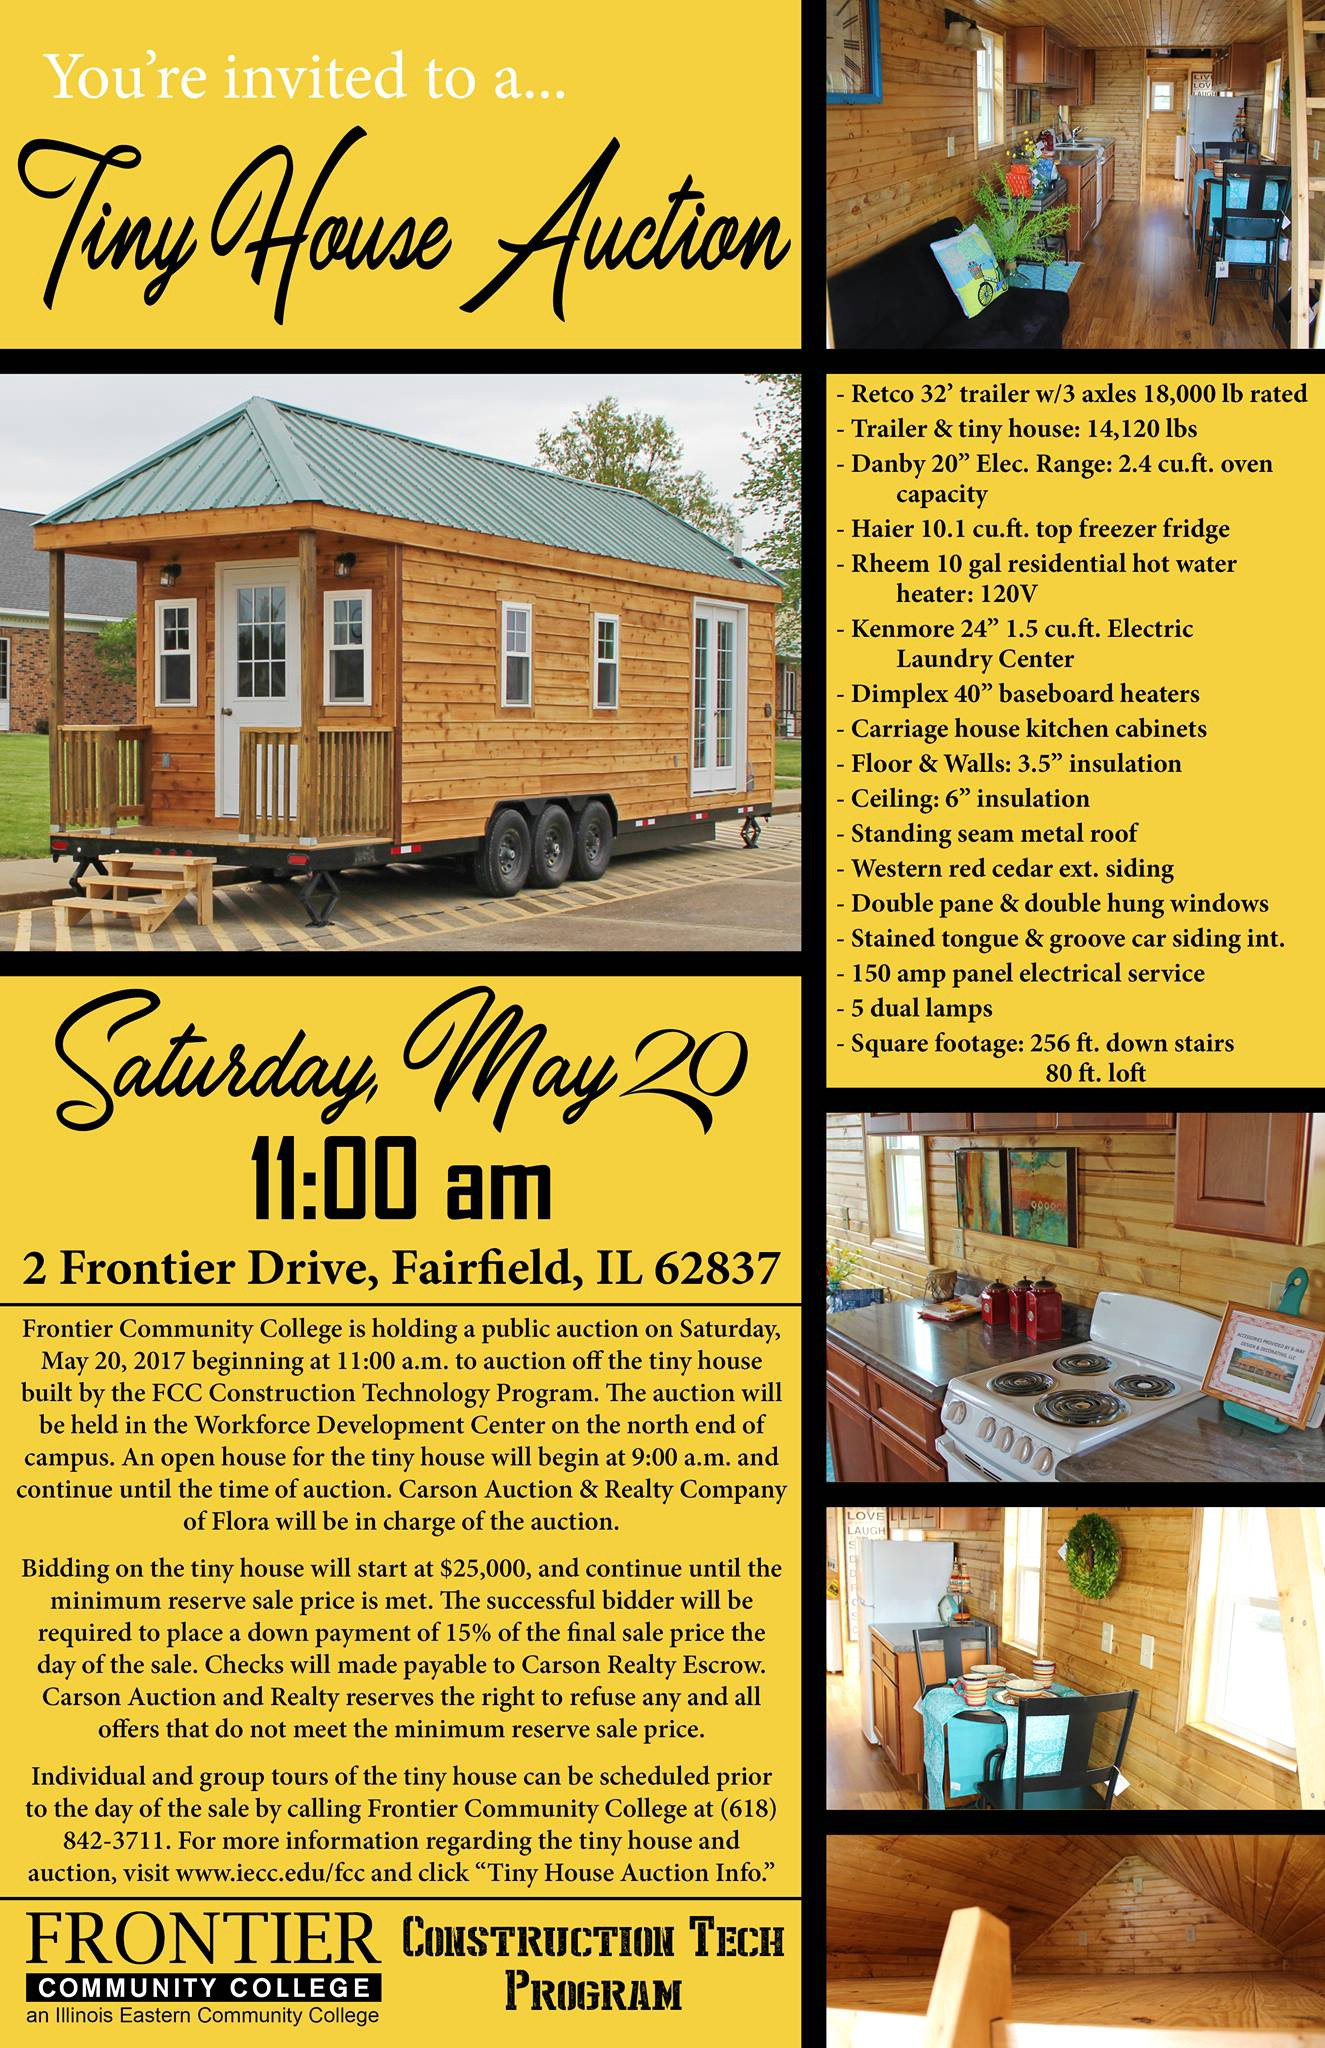 Frontier Community College Construction Technology Program Builds Tiny House in Southern Illinois